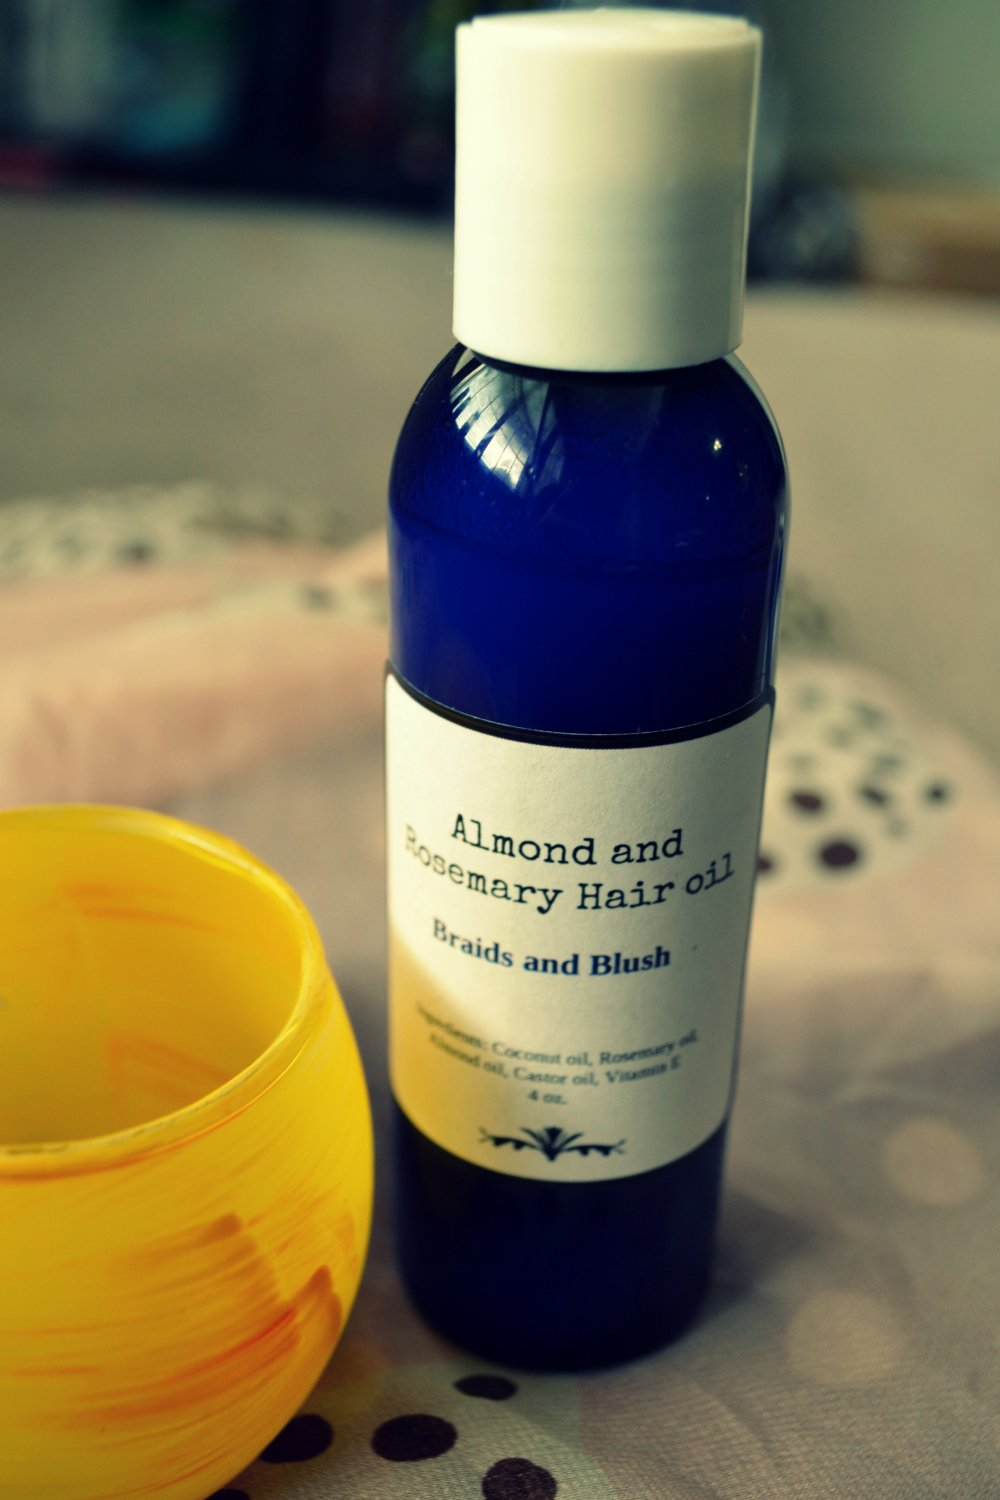 Almond Rosemary Hair Oil Mask - Good for Hair Growth / Deep Condition / No Frizz / Nourishing